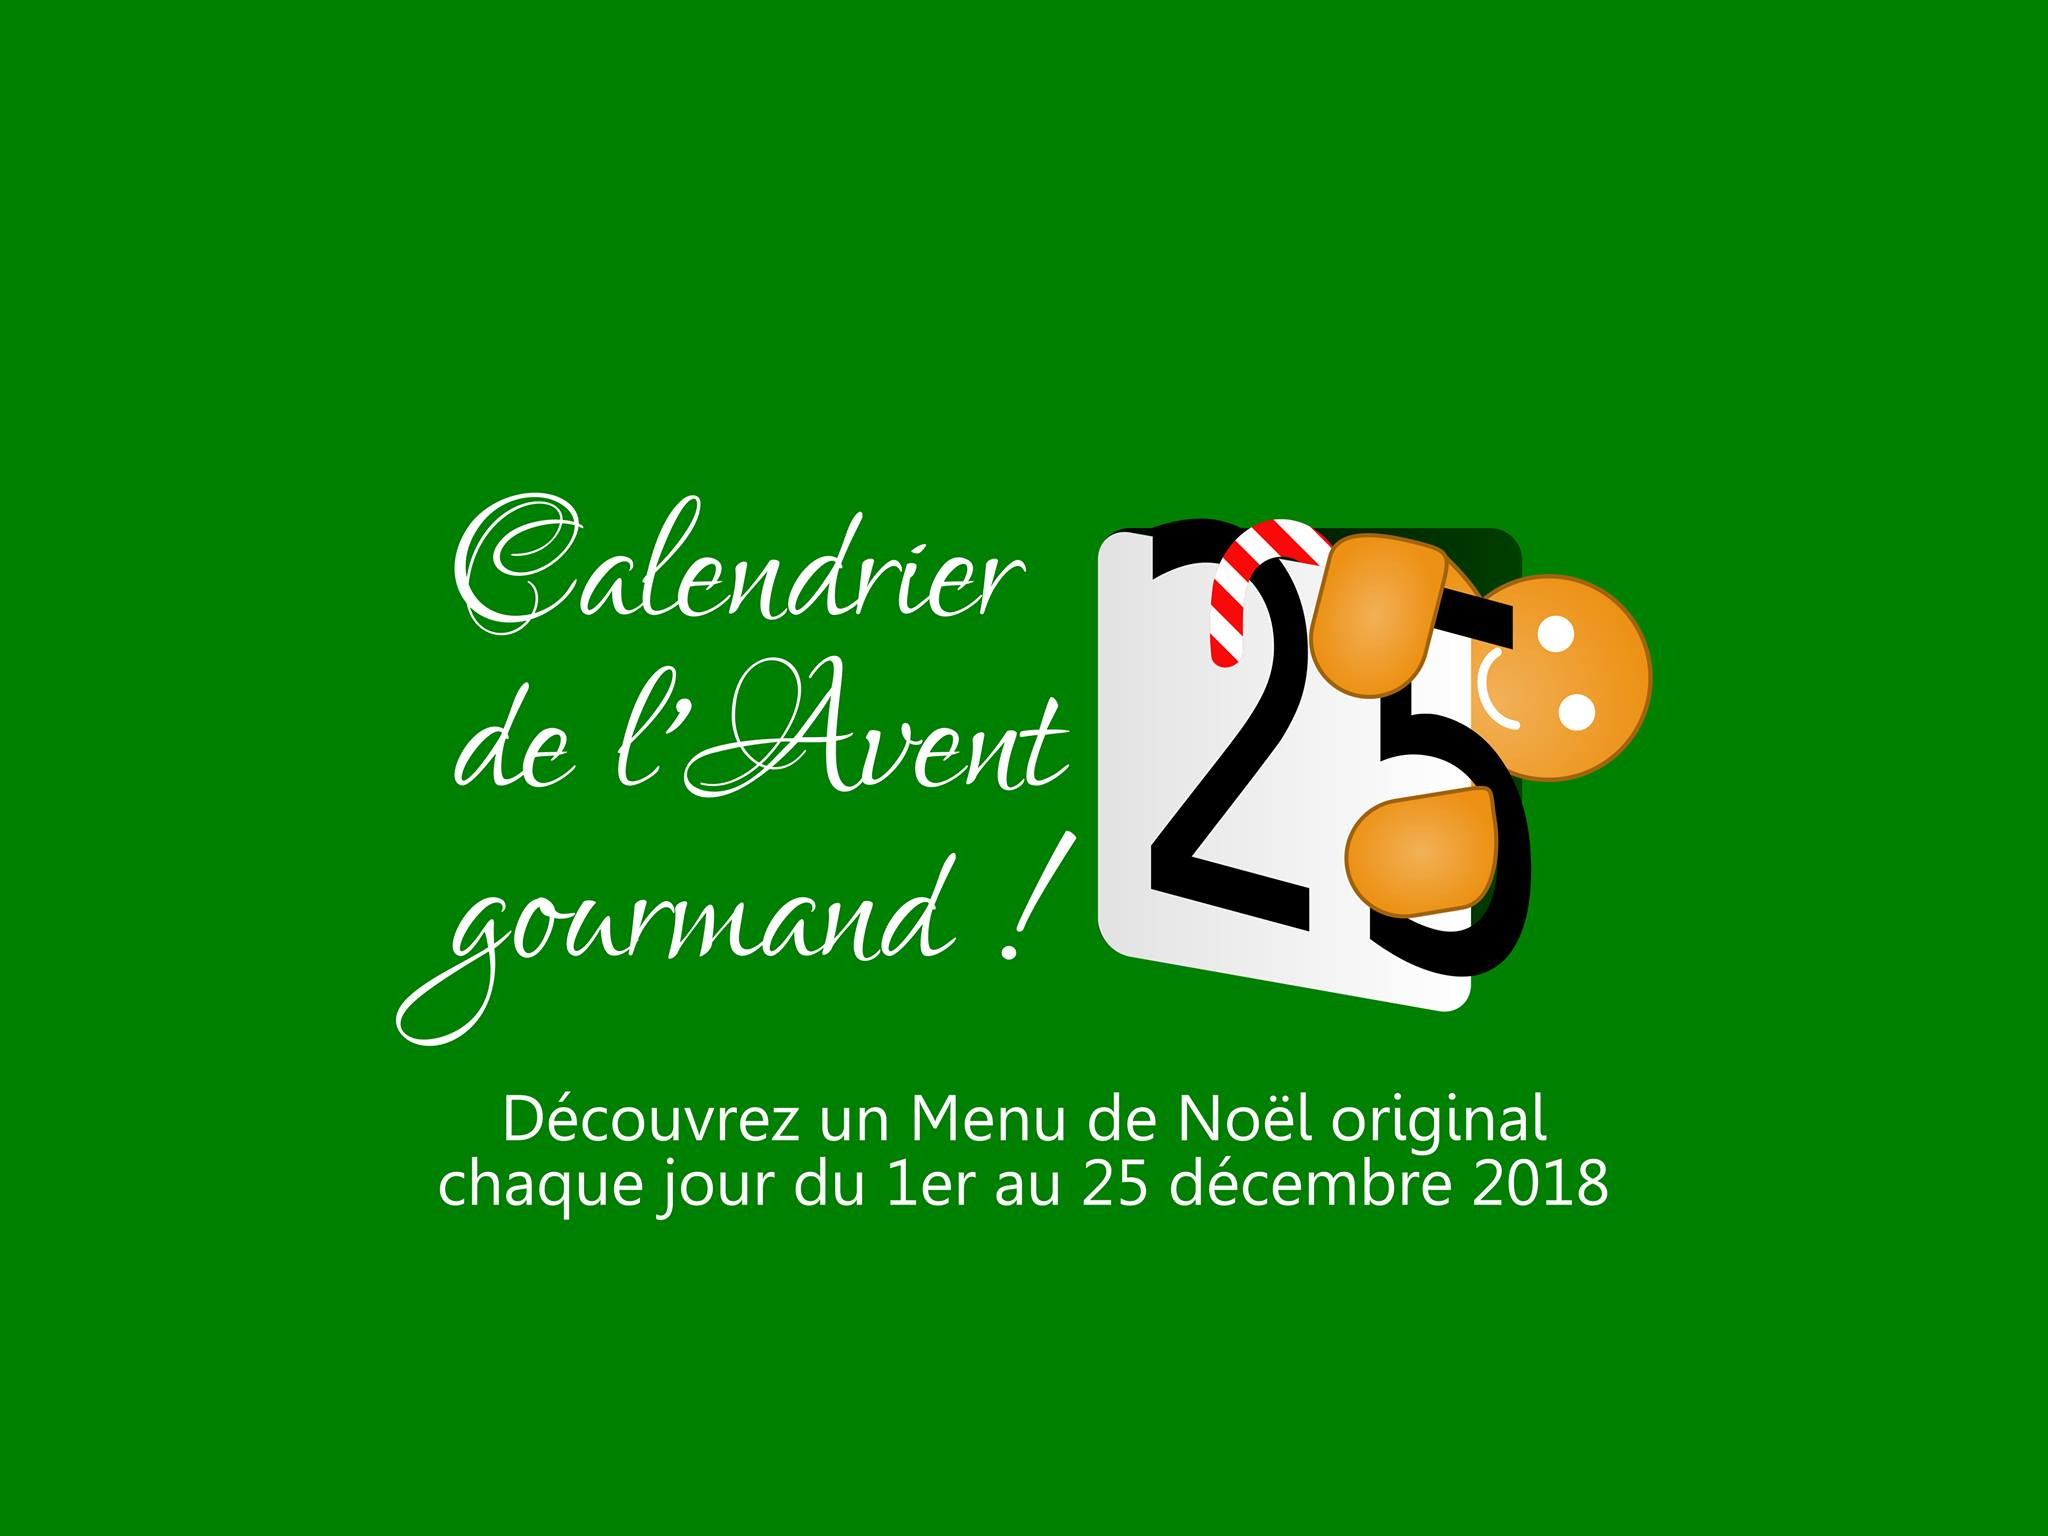 Calendrier avent 2018